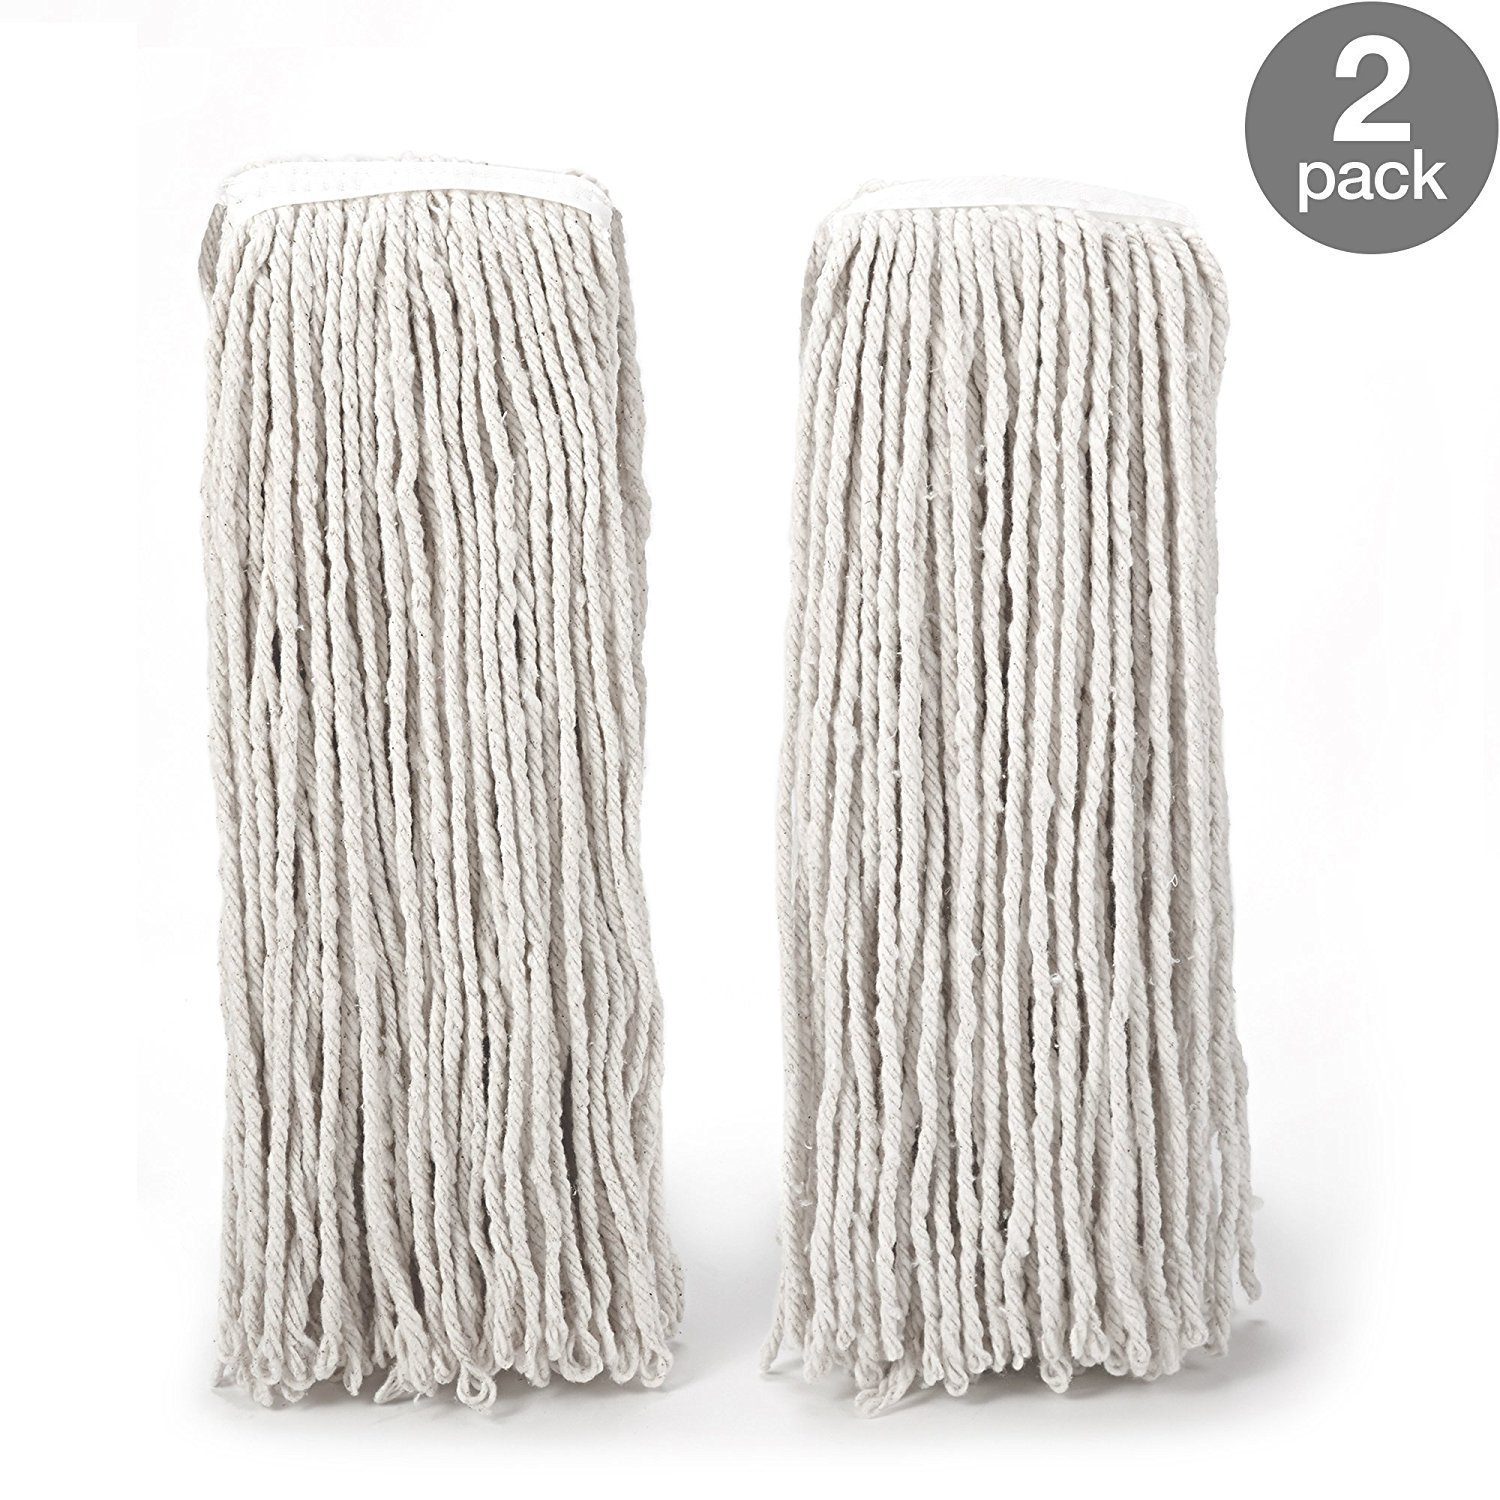 O-Cedar Heavy Duty Looped-End String Mop Refills (10 Pack)